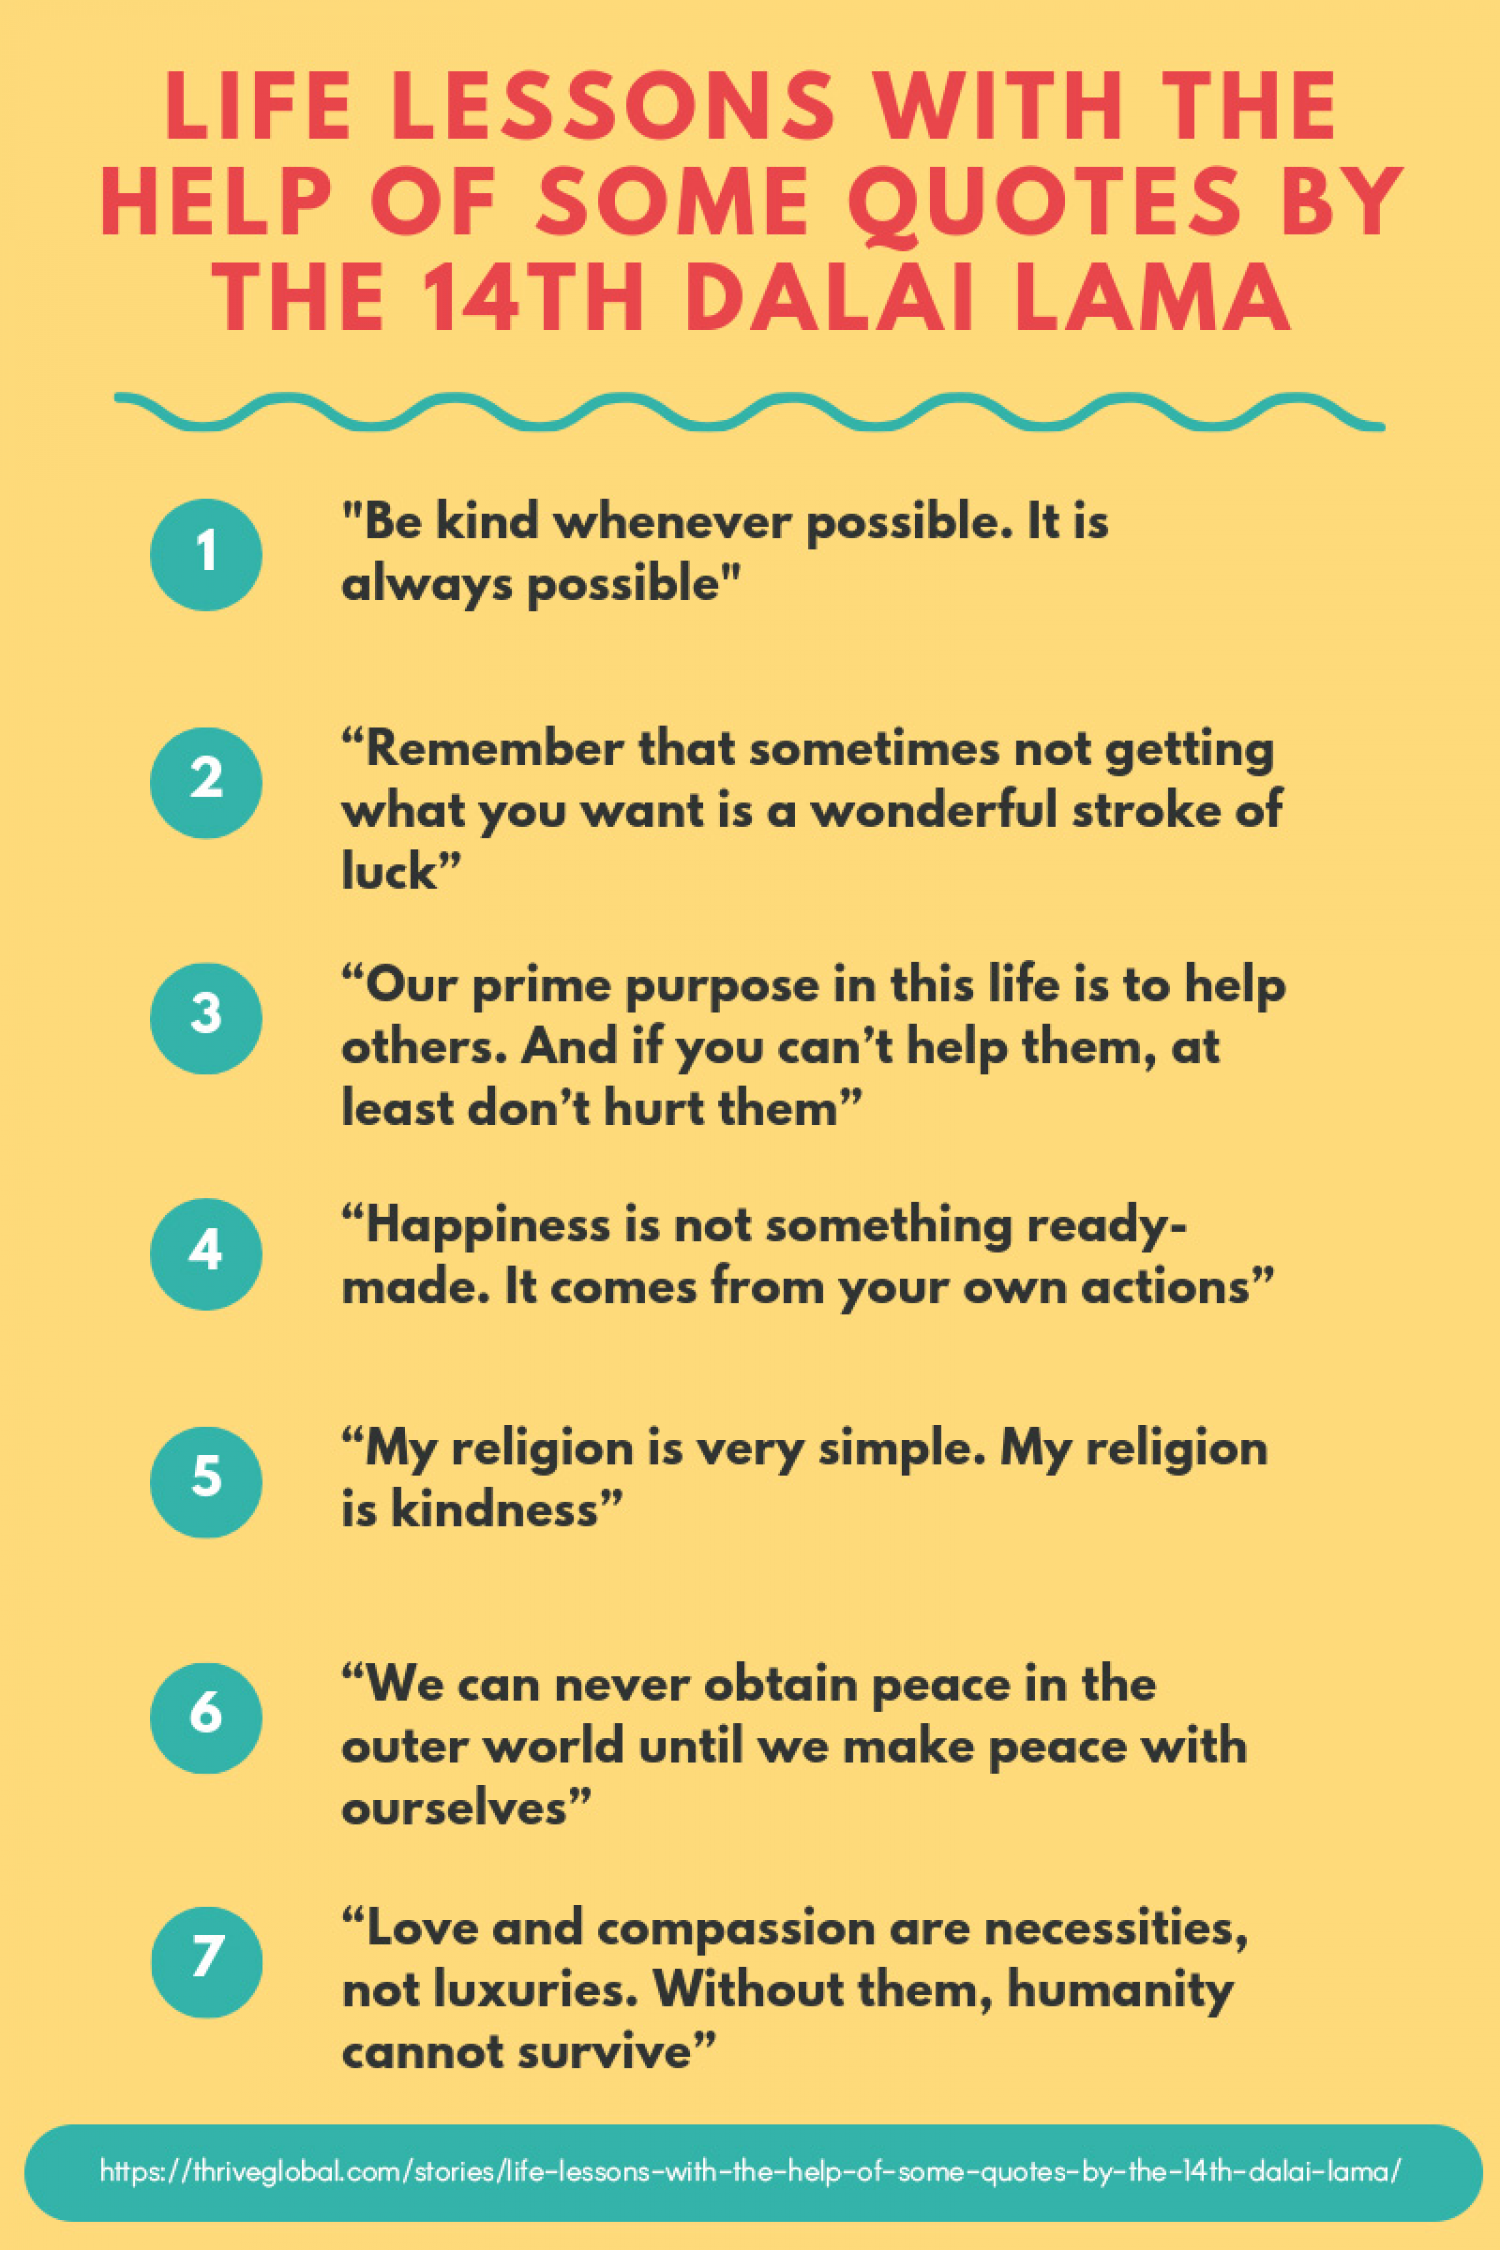 Life Lessons With The Help Of Some Quotes By The 14th Dalai Lama Infographic